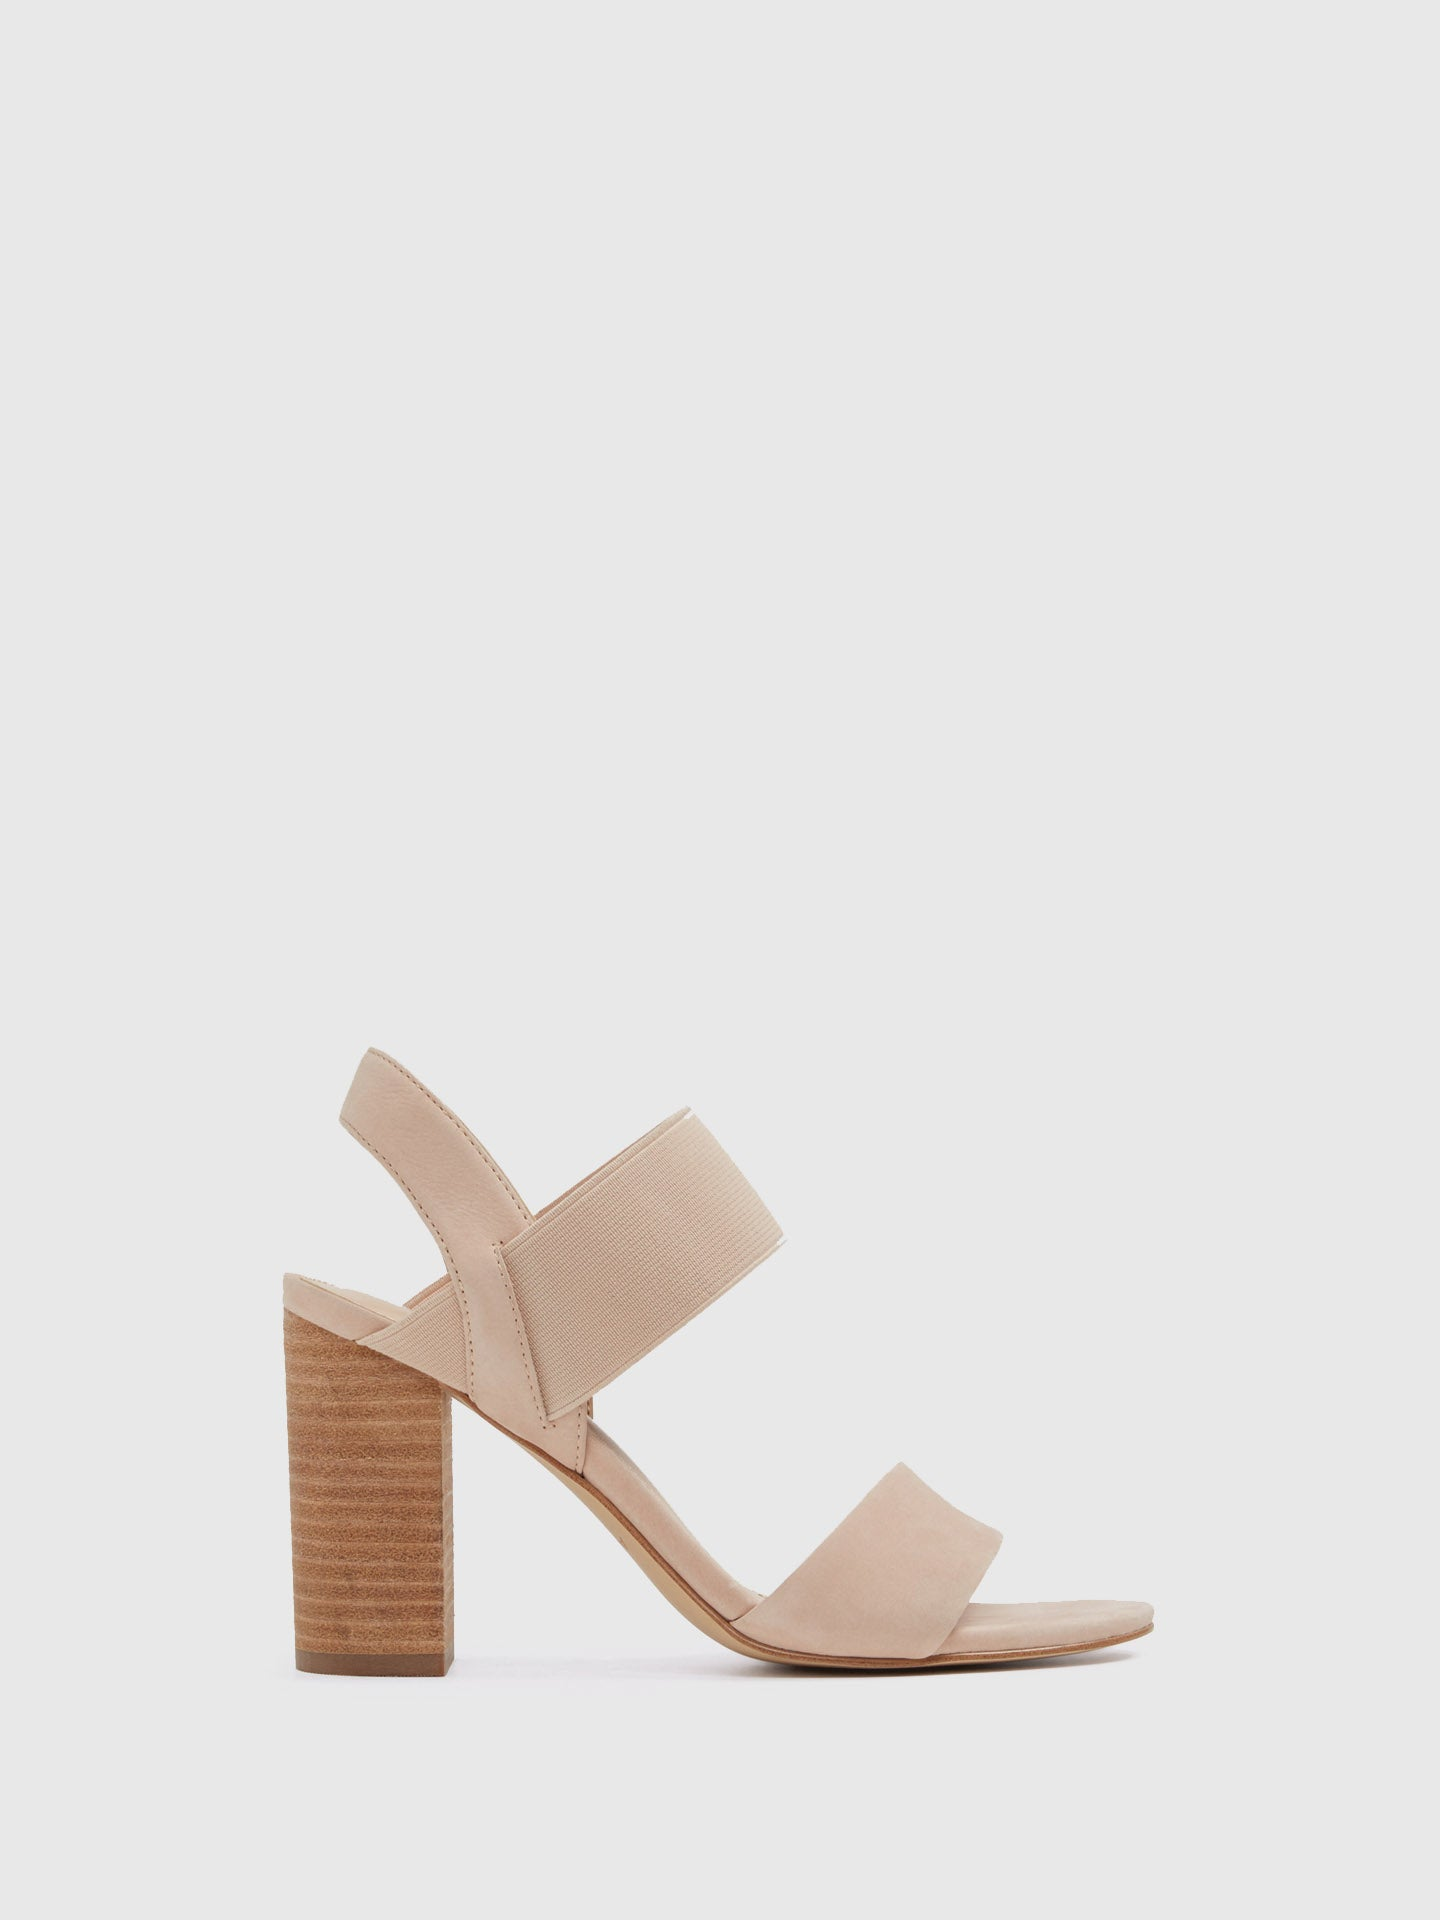 Aldo Beige Sling-Back Pumps Sandals